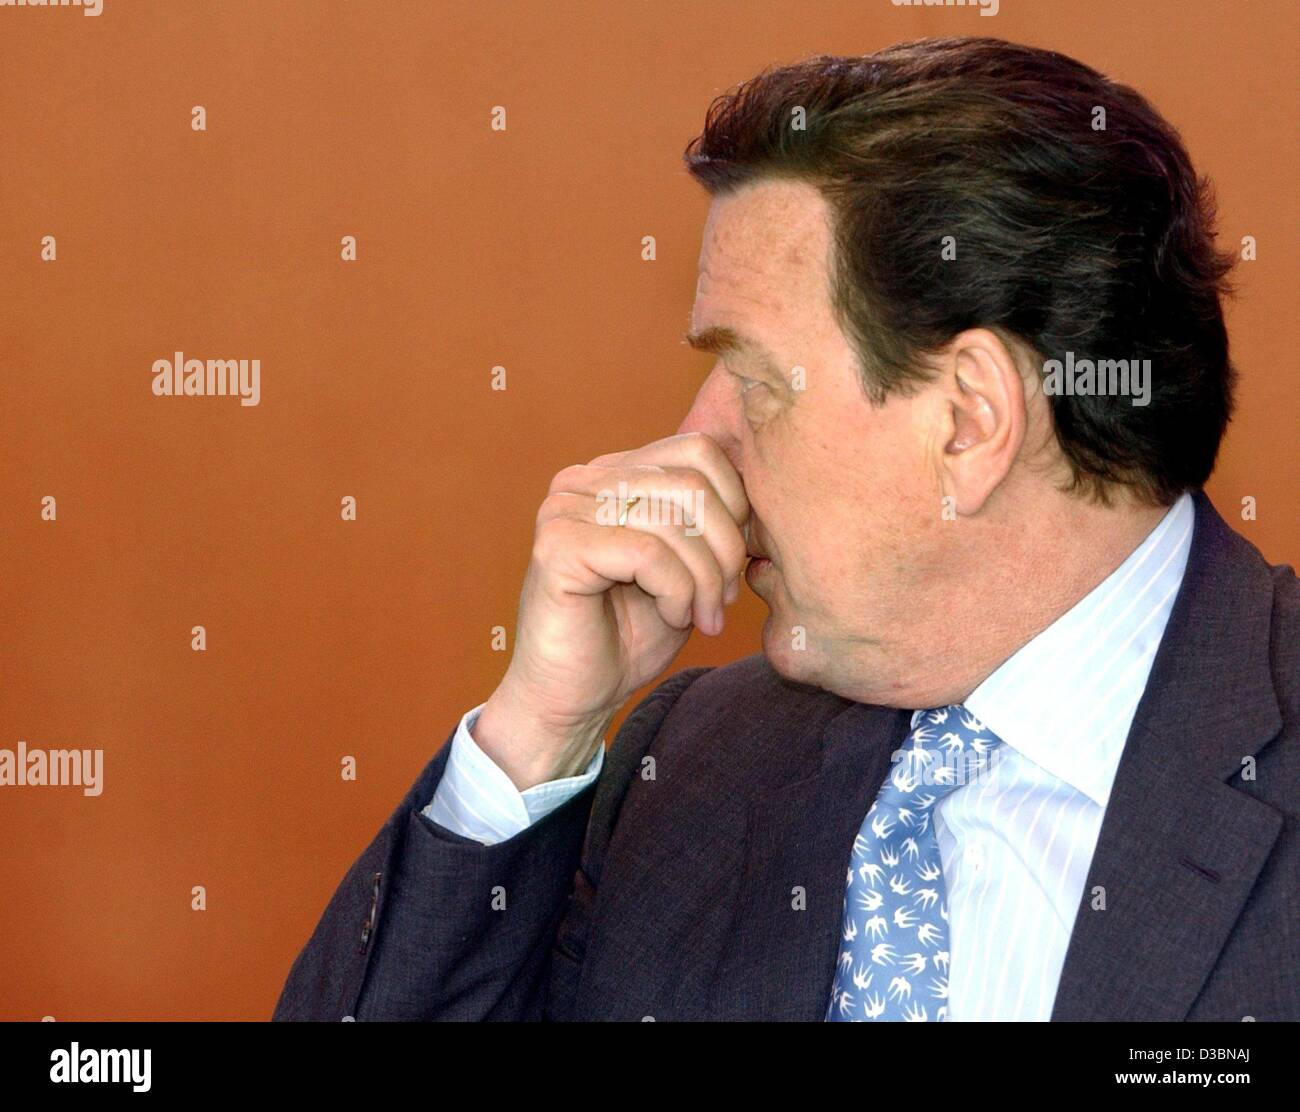 (dpa) - German Chancellor Gerhard Schroeder touches his nose ahead of a cabinet meeting in Berlin, 9 April 2003. - Stock Image